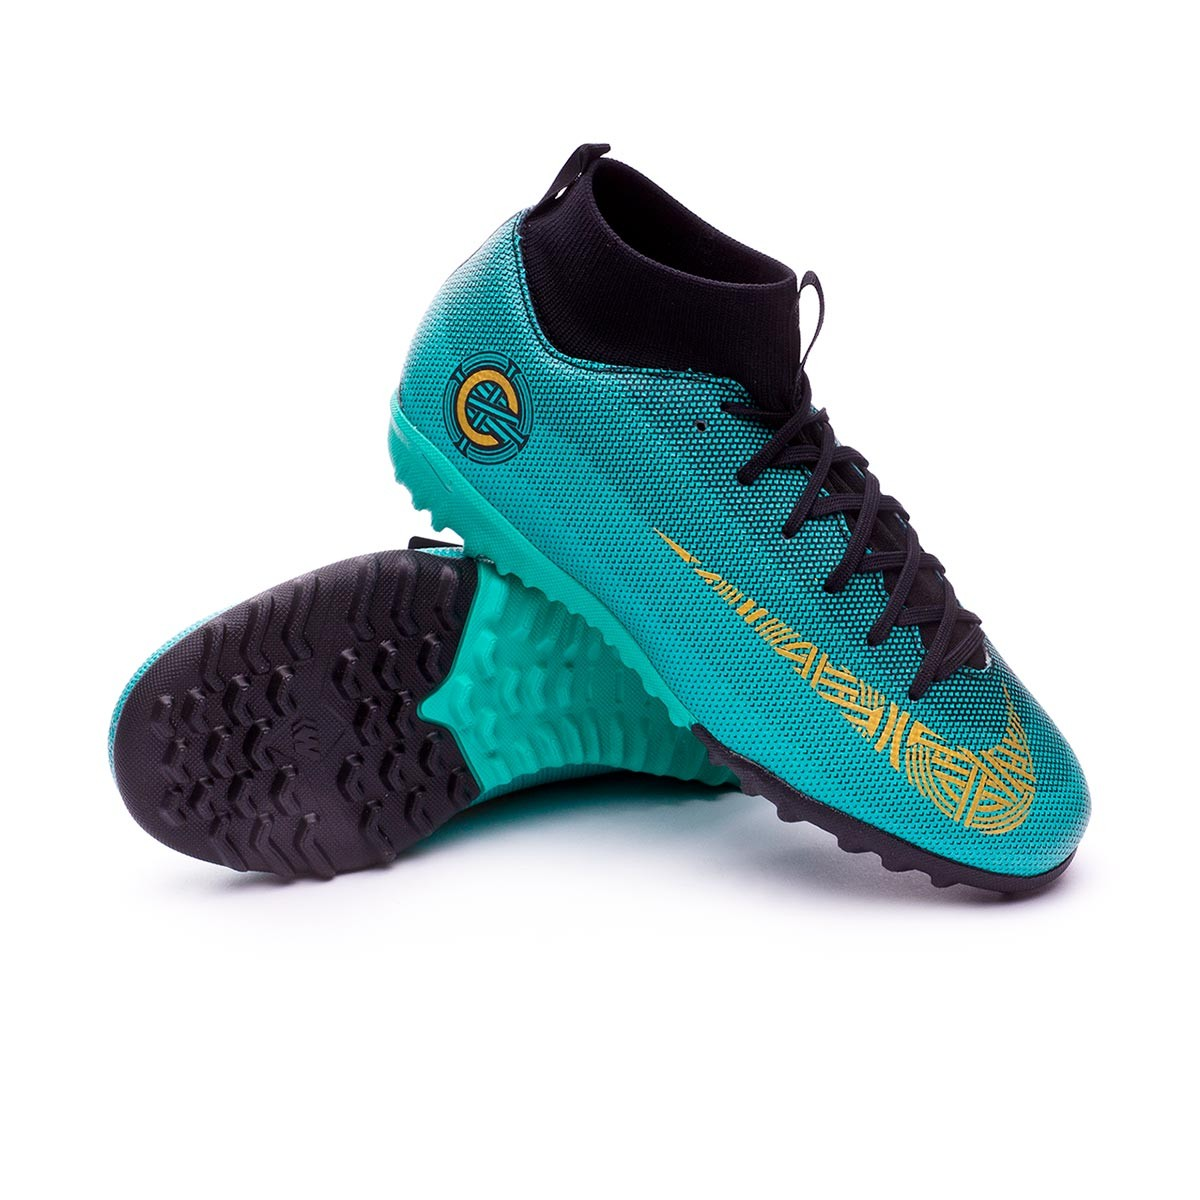 bdd36867 Tenis Nike Mercurial Superfly VI Academy GS CR7 Turf Niño Clear  jade-Metallic vivid gold-Black - Tienda de fútbol Fútbol Emotion